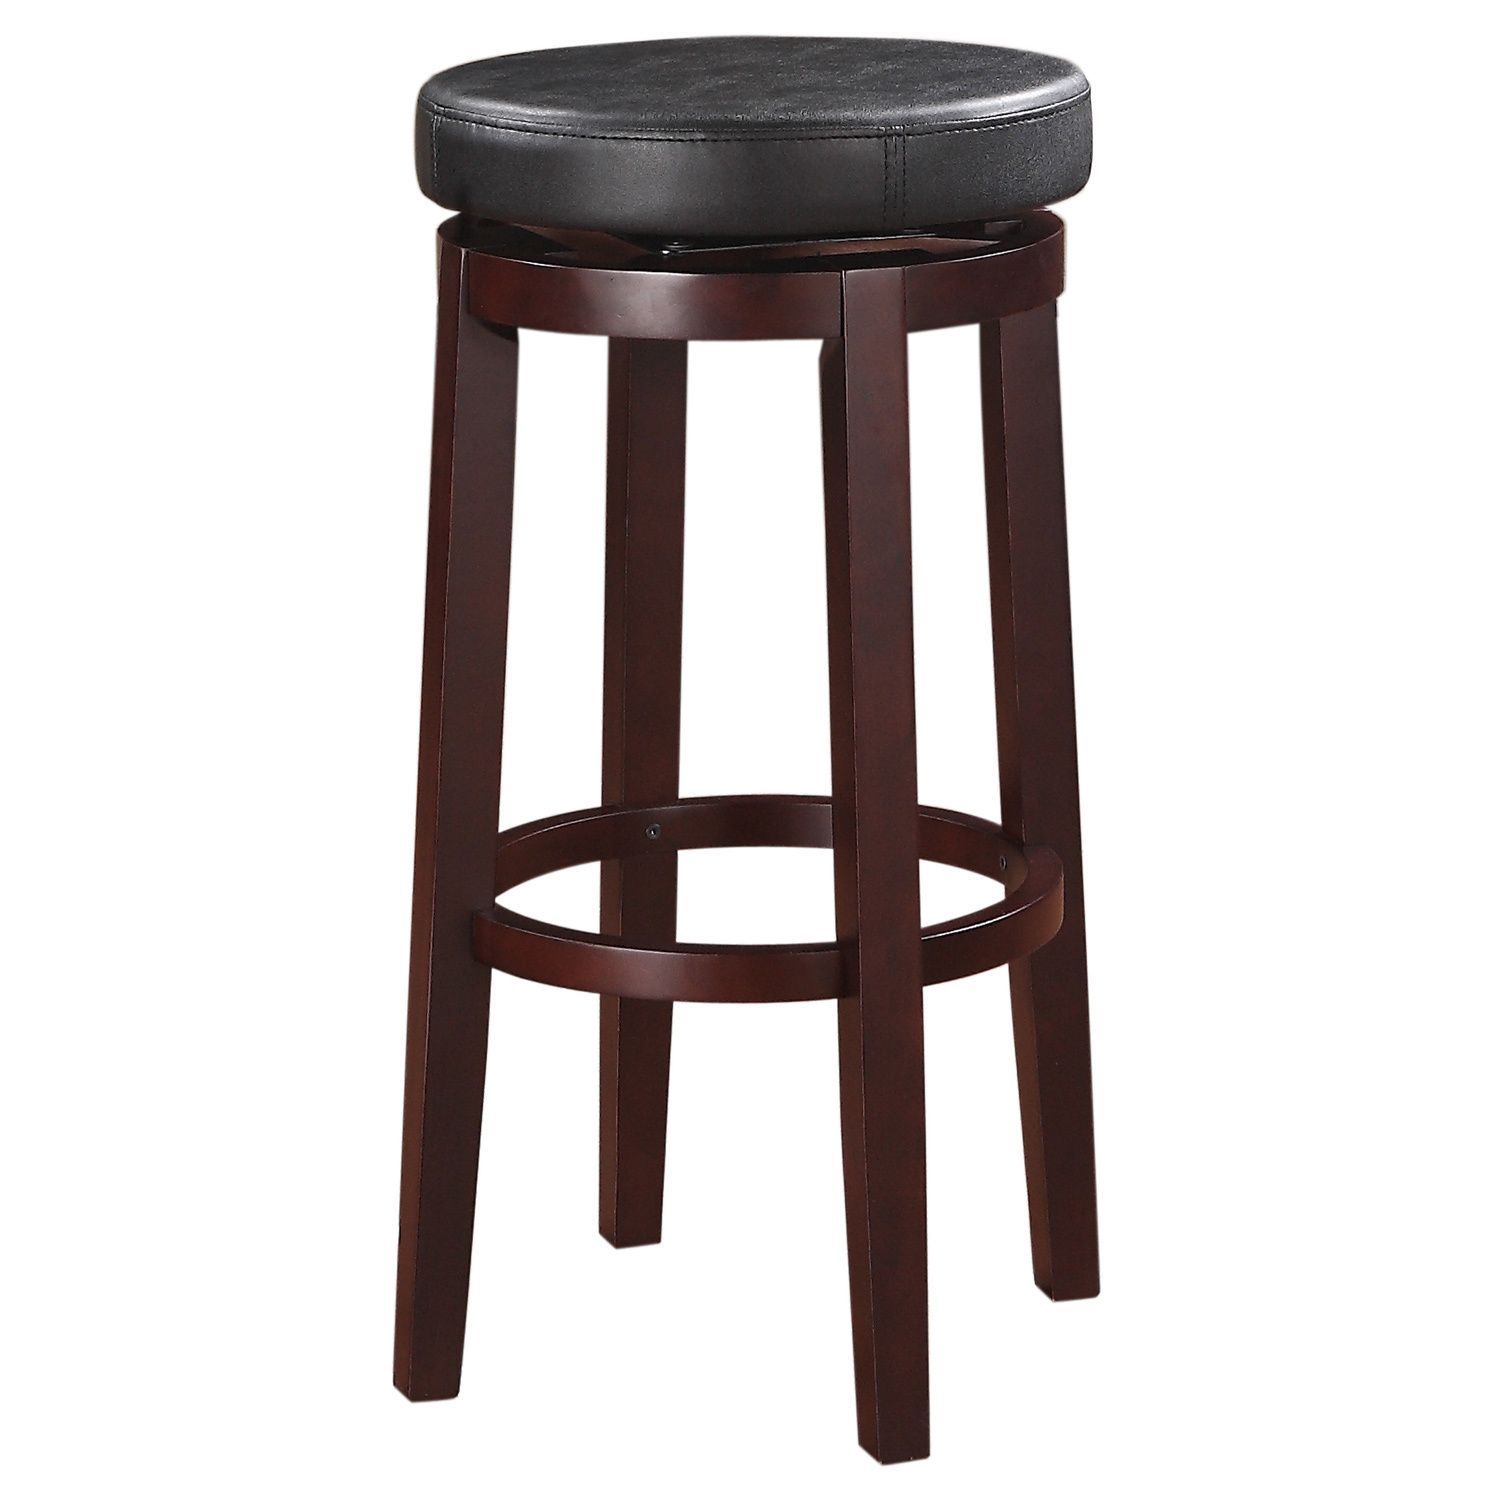 Buy Furniture Online Free Shipping: Buy Bar Stools And Tables From Overstock.com For Everyday